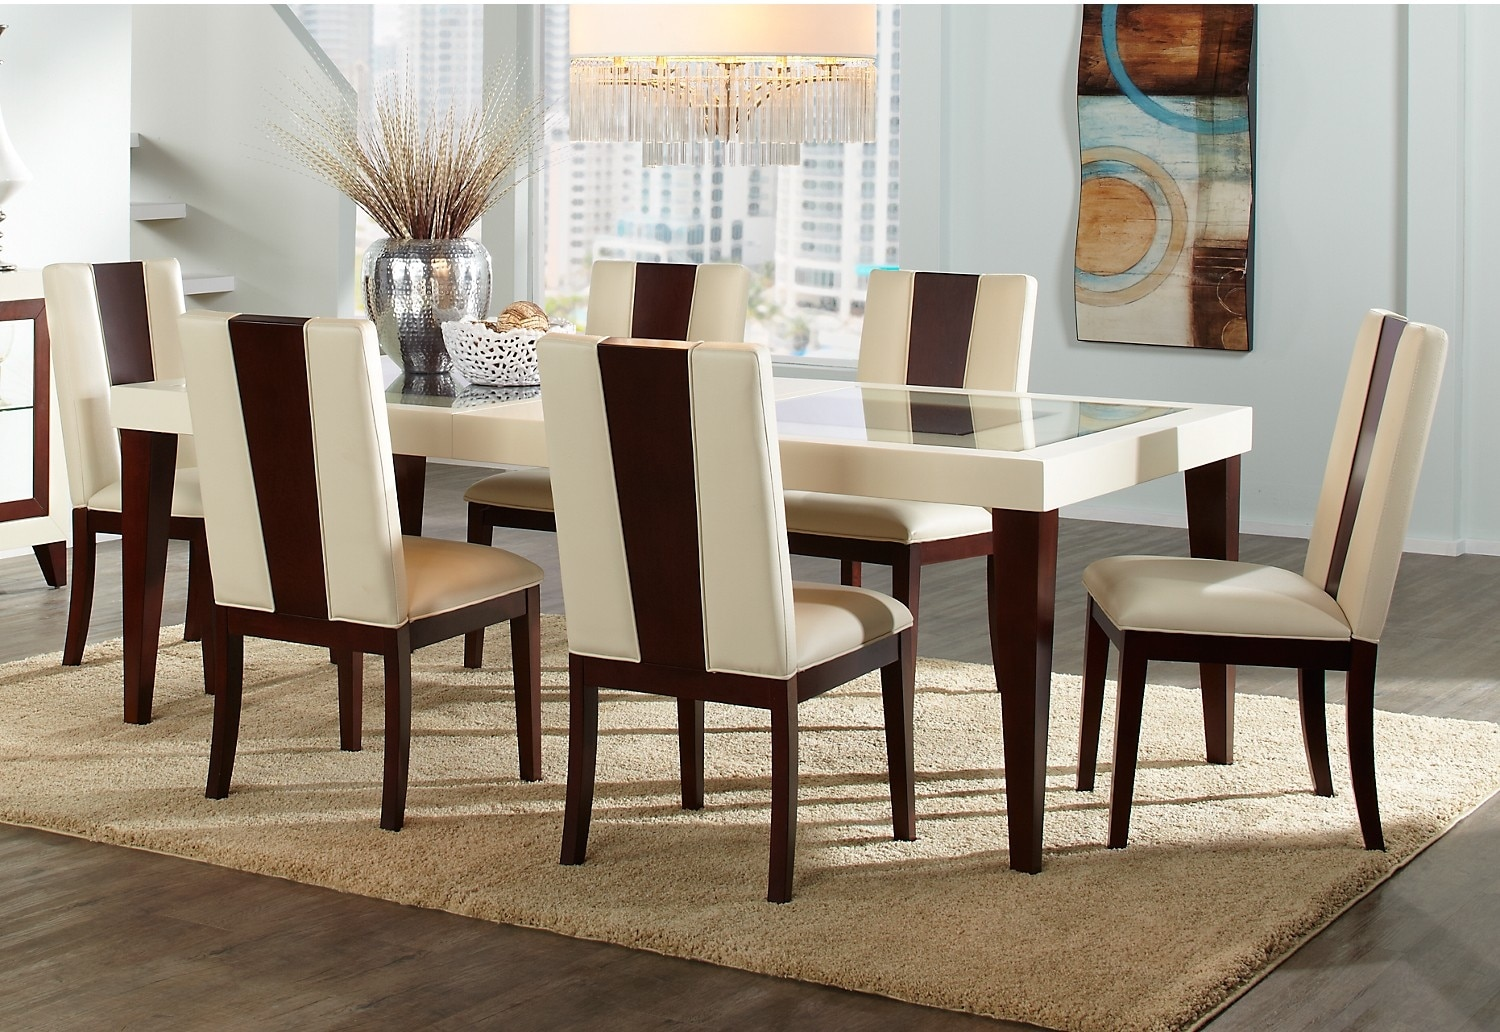 Dining room sets canada kitchen astonish kitchen tables for Dining room furnishings